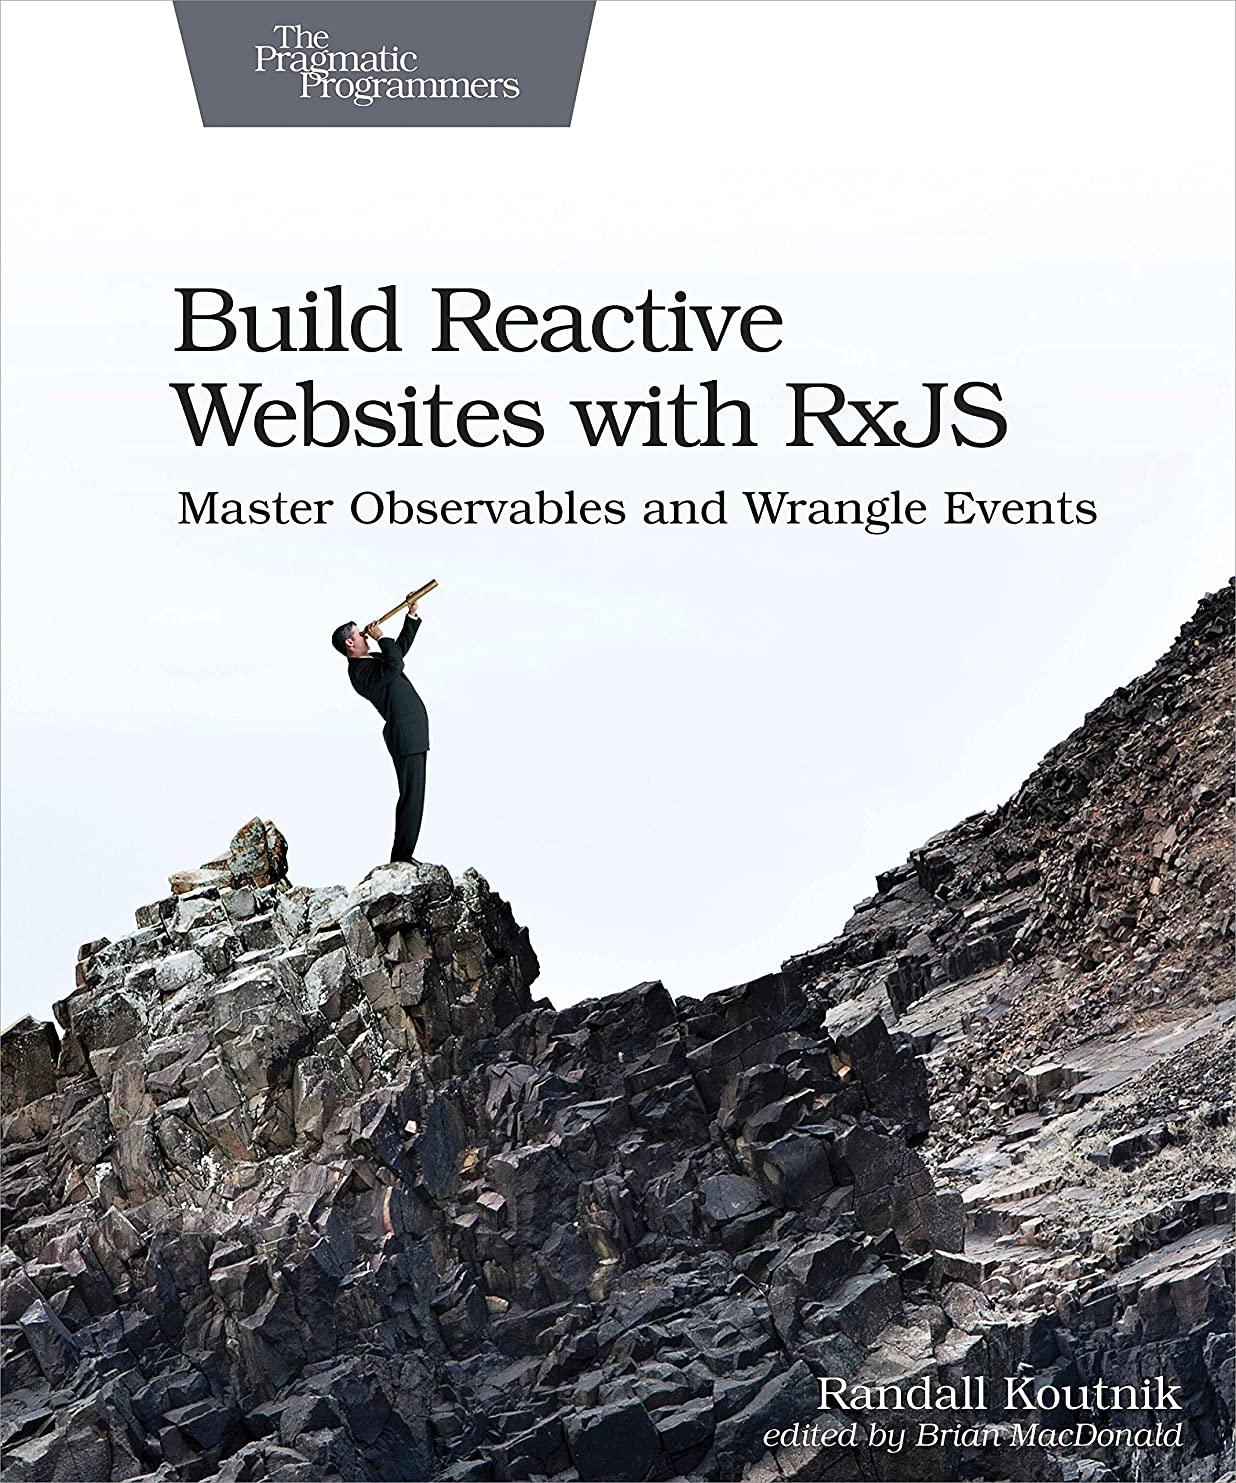 辛い安全共感するBuild Reactive Websites with RxJS: Master Observables and Wrangle Events (English Edition)